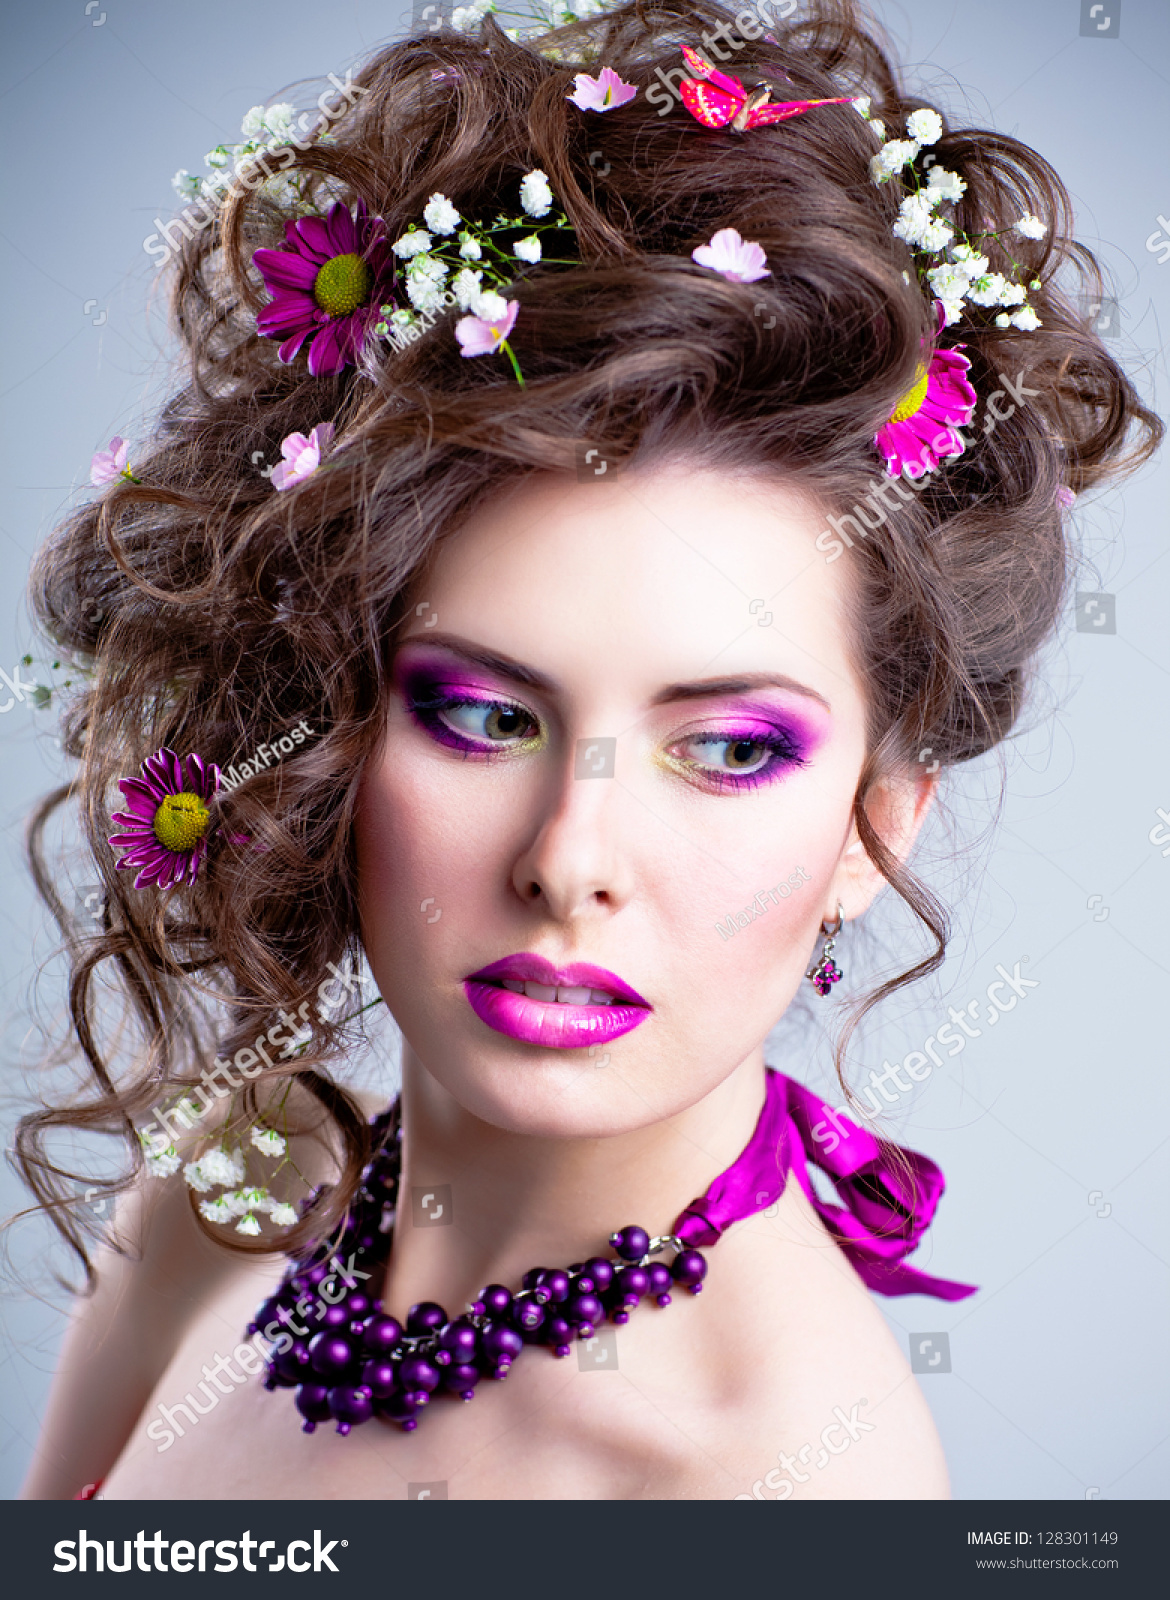 Young beautiful woman flowers her hair stock photo 128301149 young beautiful woman with flowers in her hair and bright artistic makeup dhlflorist Gallery